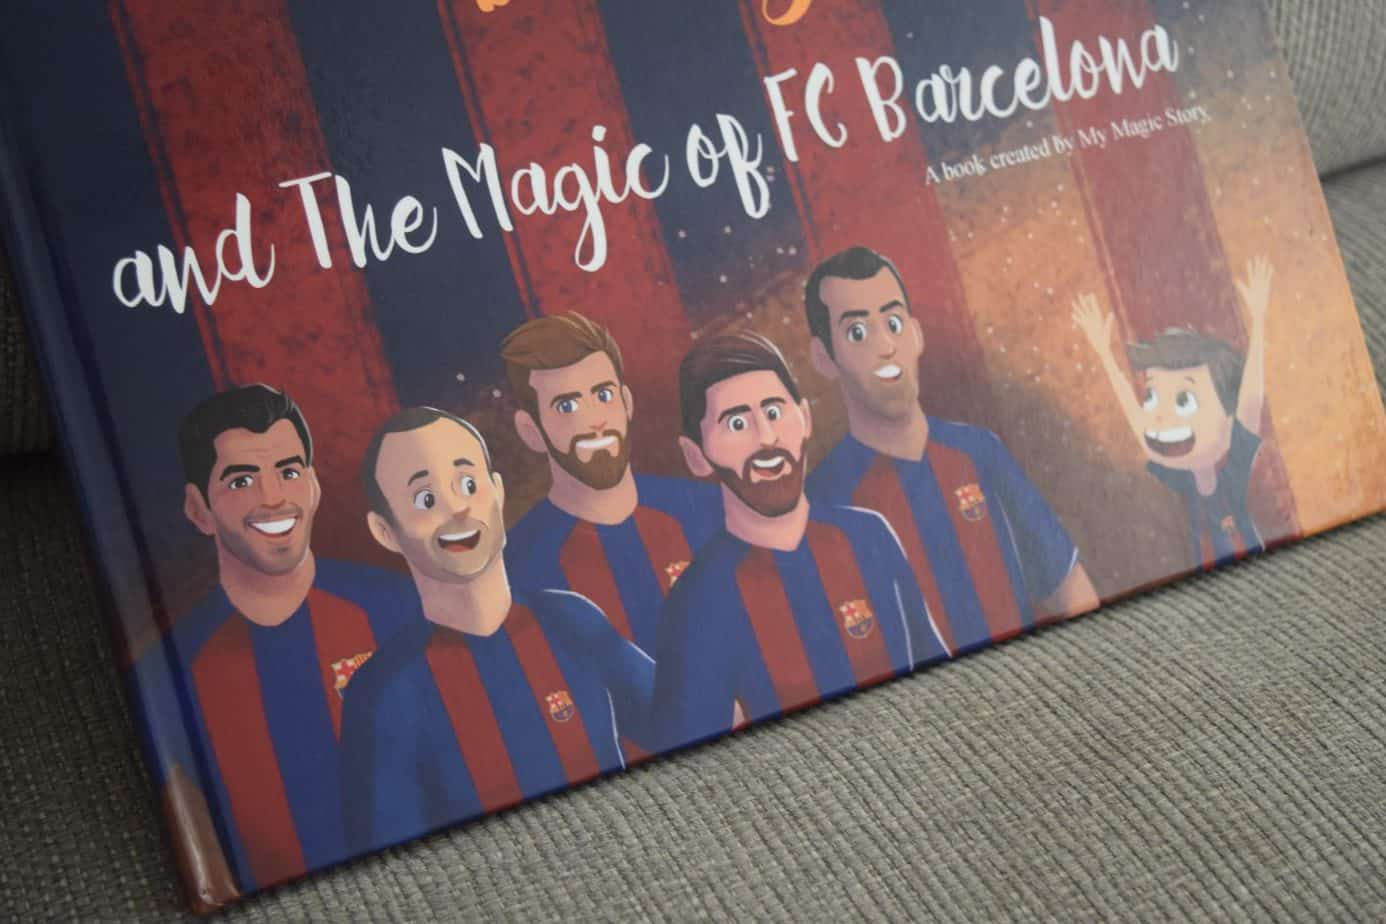 The personalised football book on Barcelona FC from The Magic Story